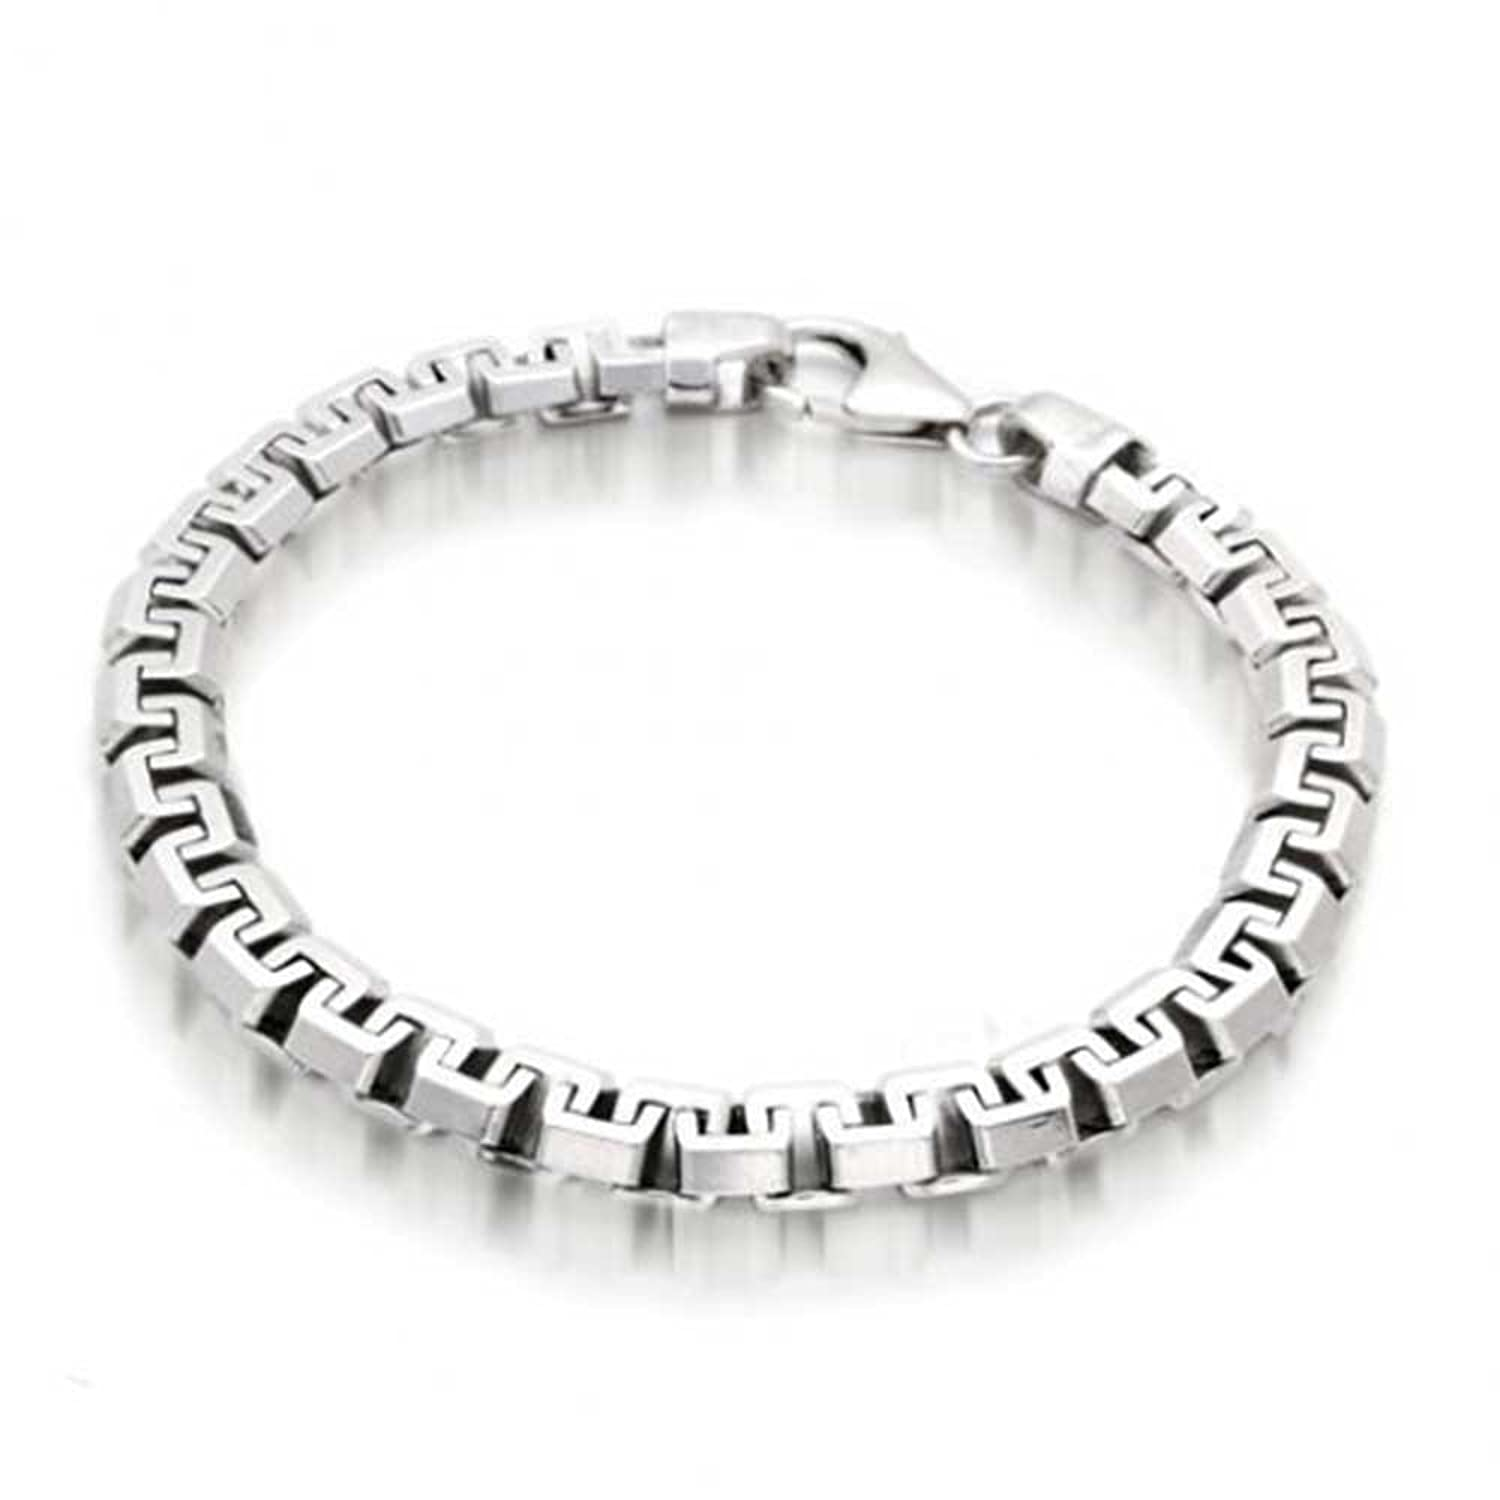 Amazon.com: Bling Jewelry Mens Square Link Chain Bracelet 925 ...